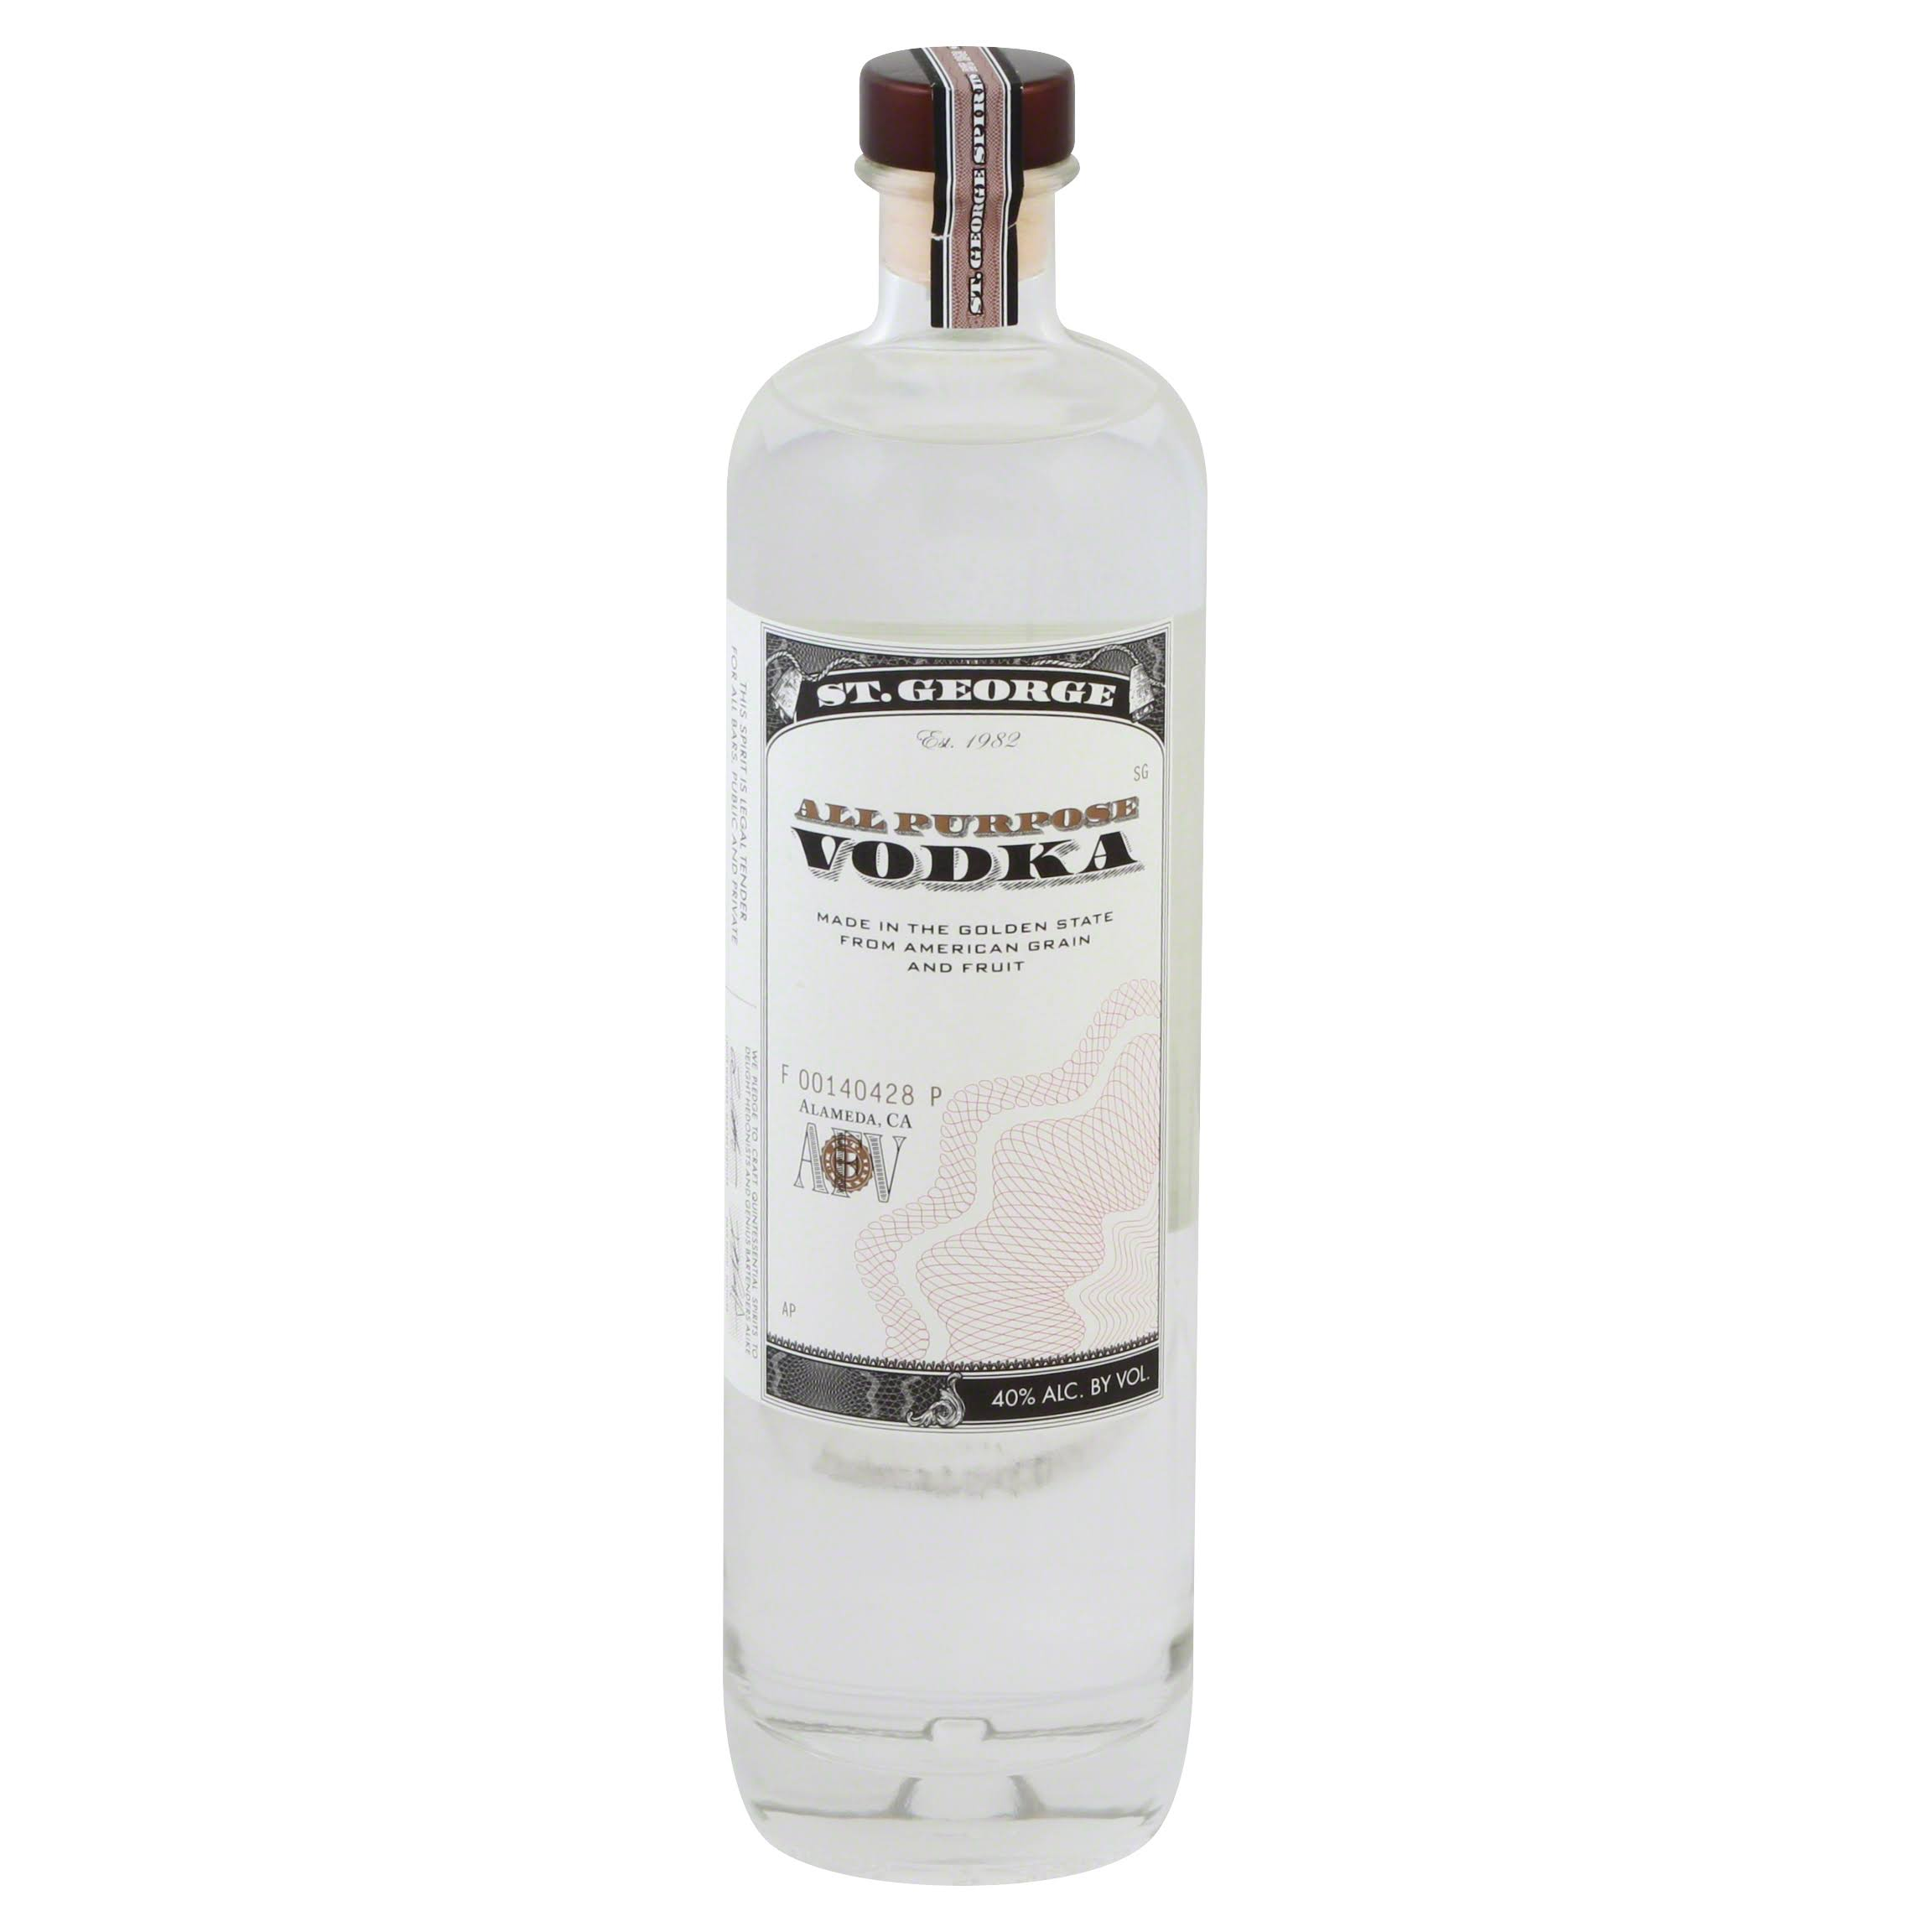 St. George Vodka - 750 ml bottle